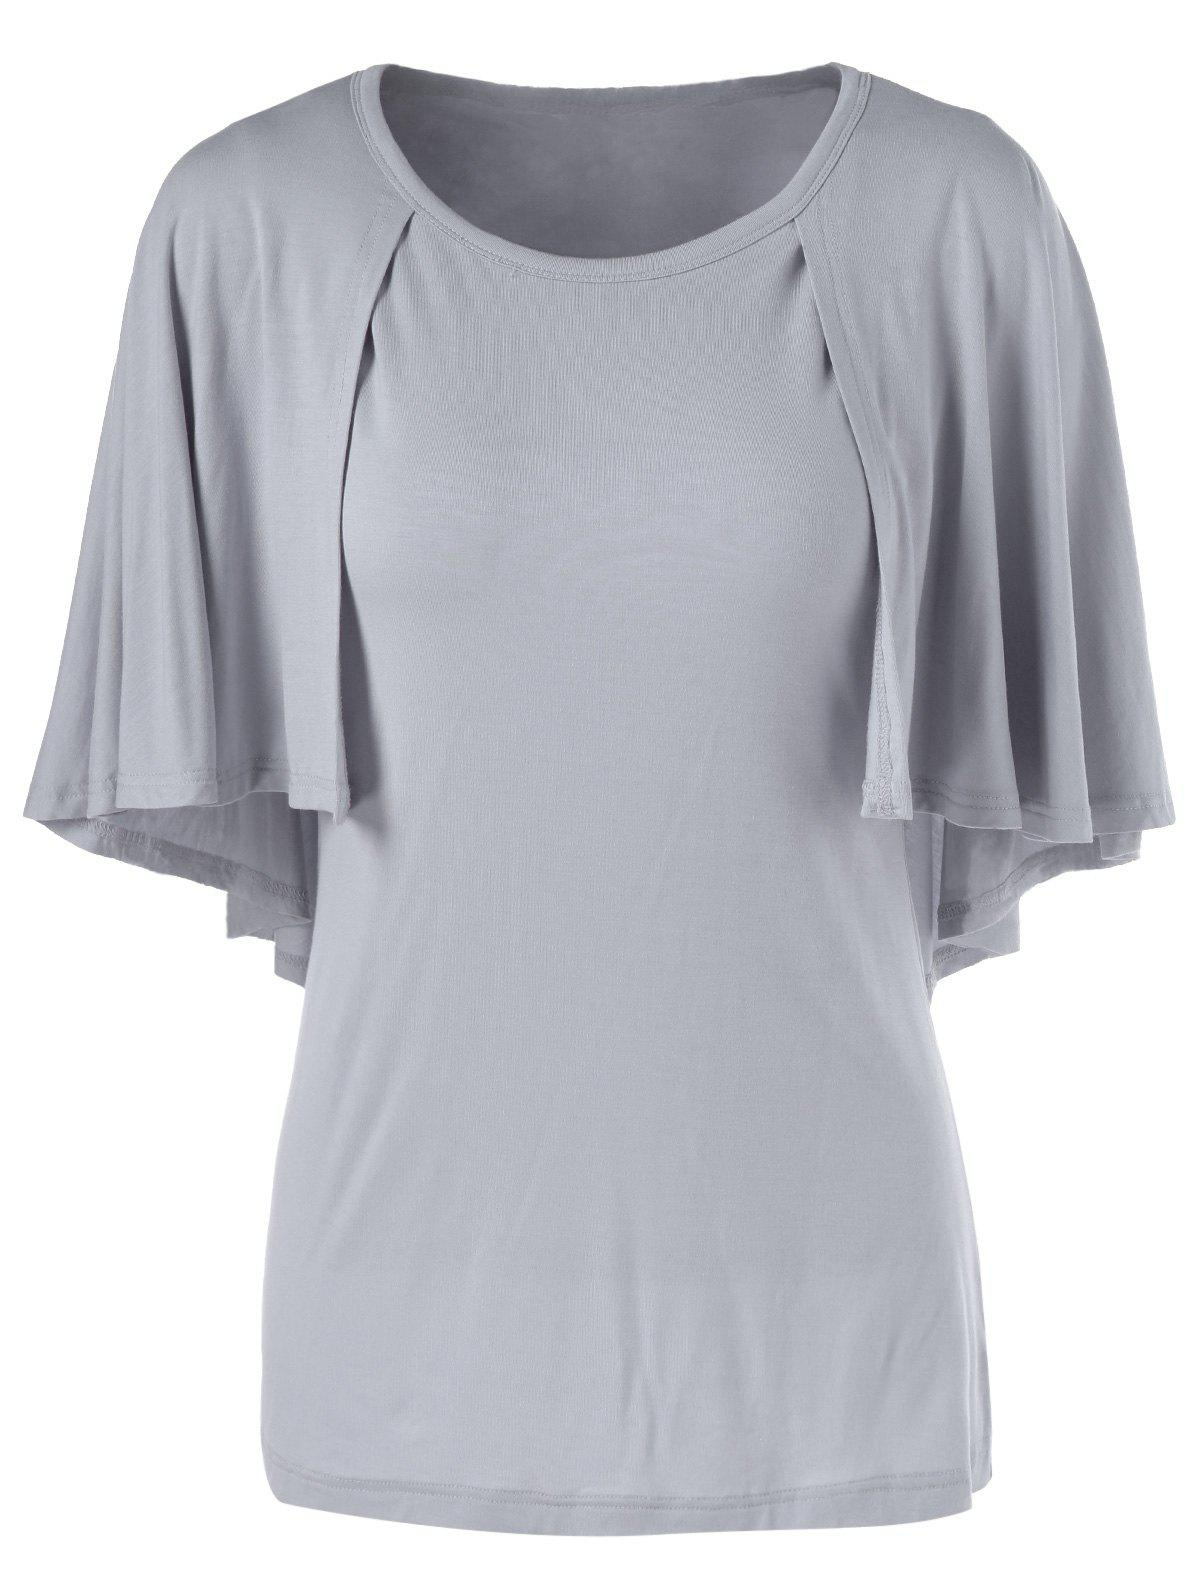 Fashionable Women's 3/4 Sleeve Short Sleeve Solid Color Loose-Fitting T-Shirt - GRAY XL